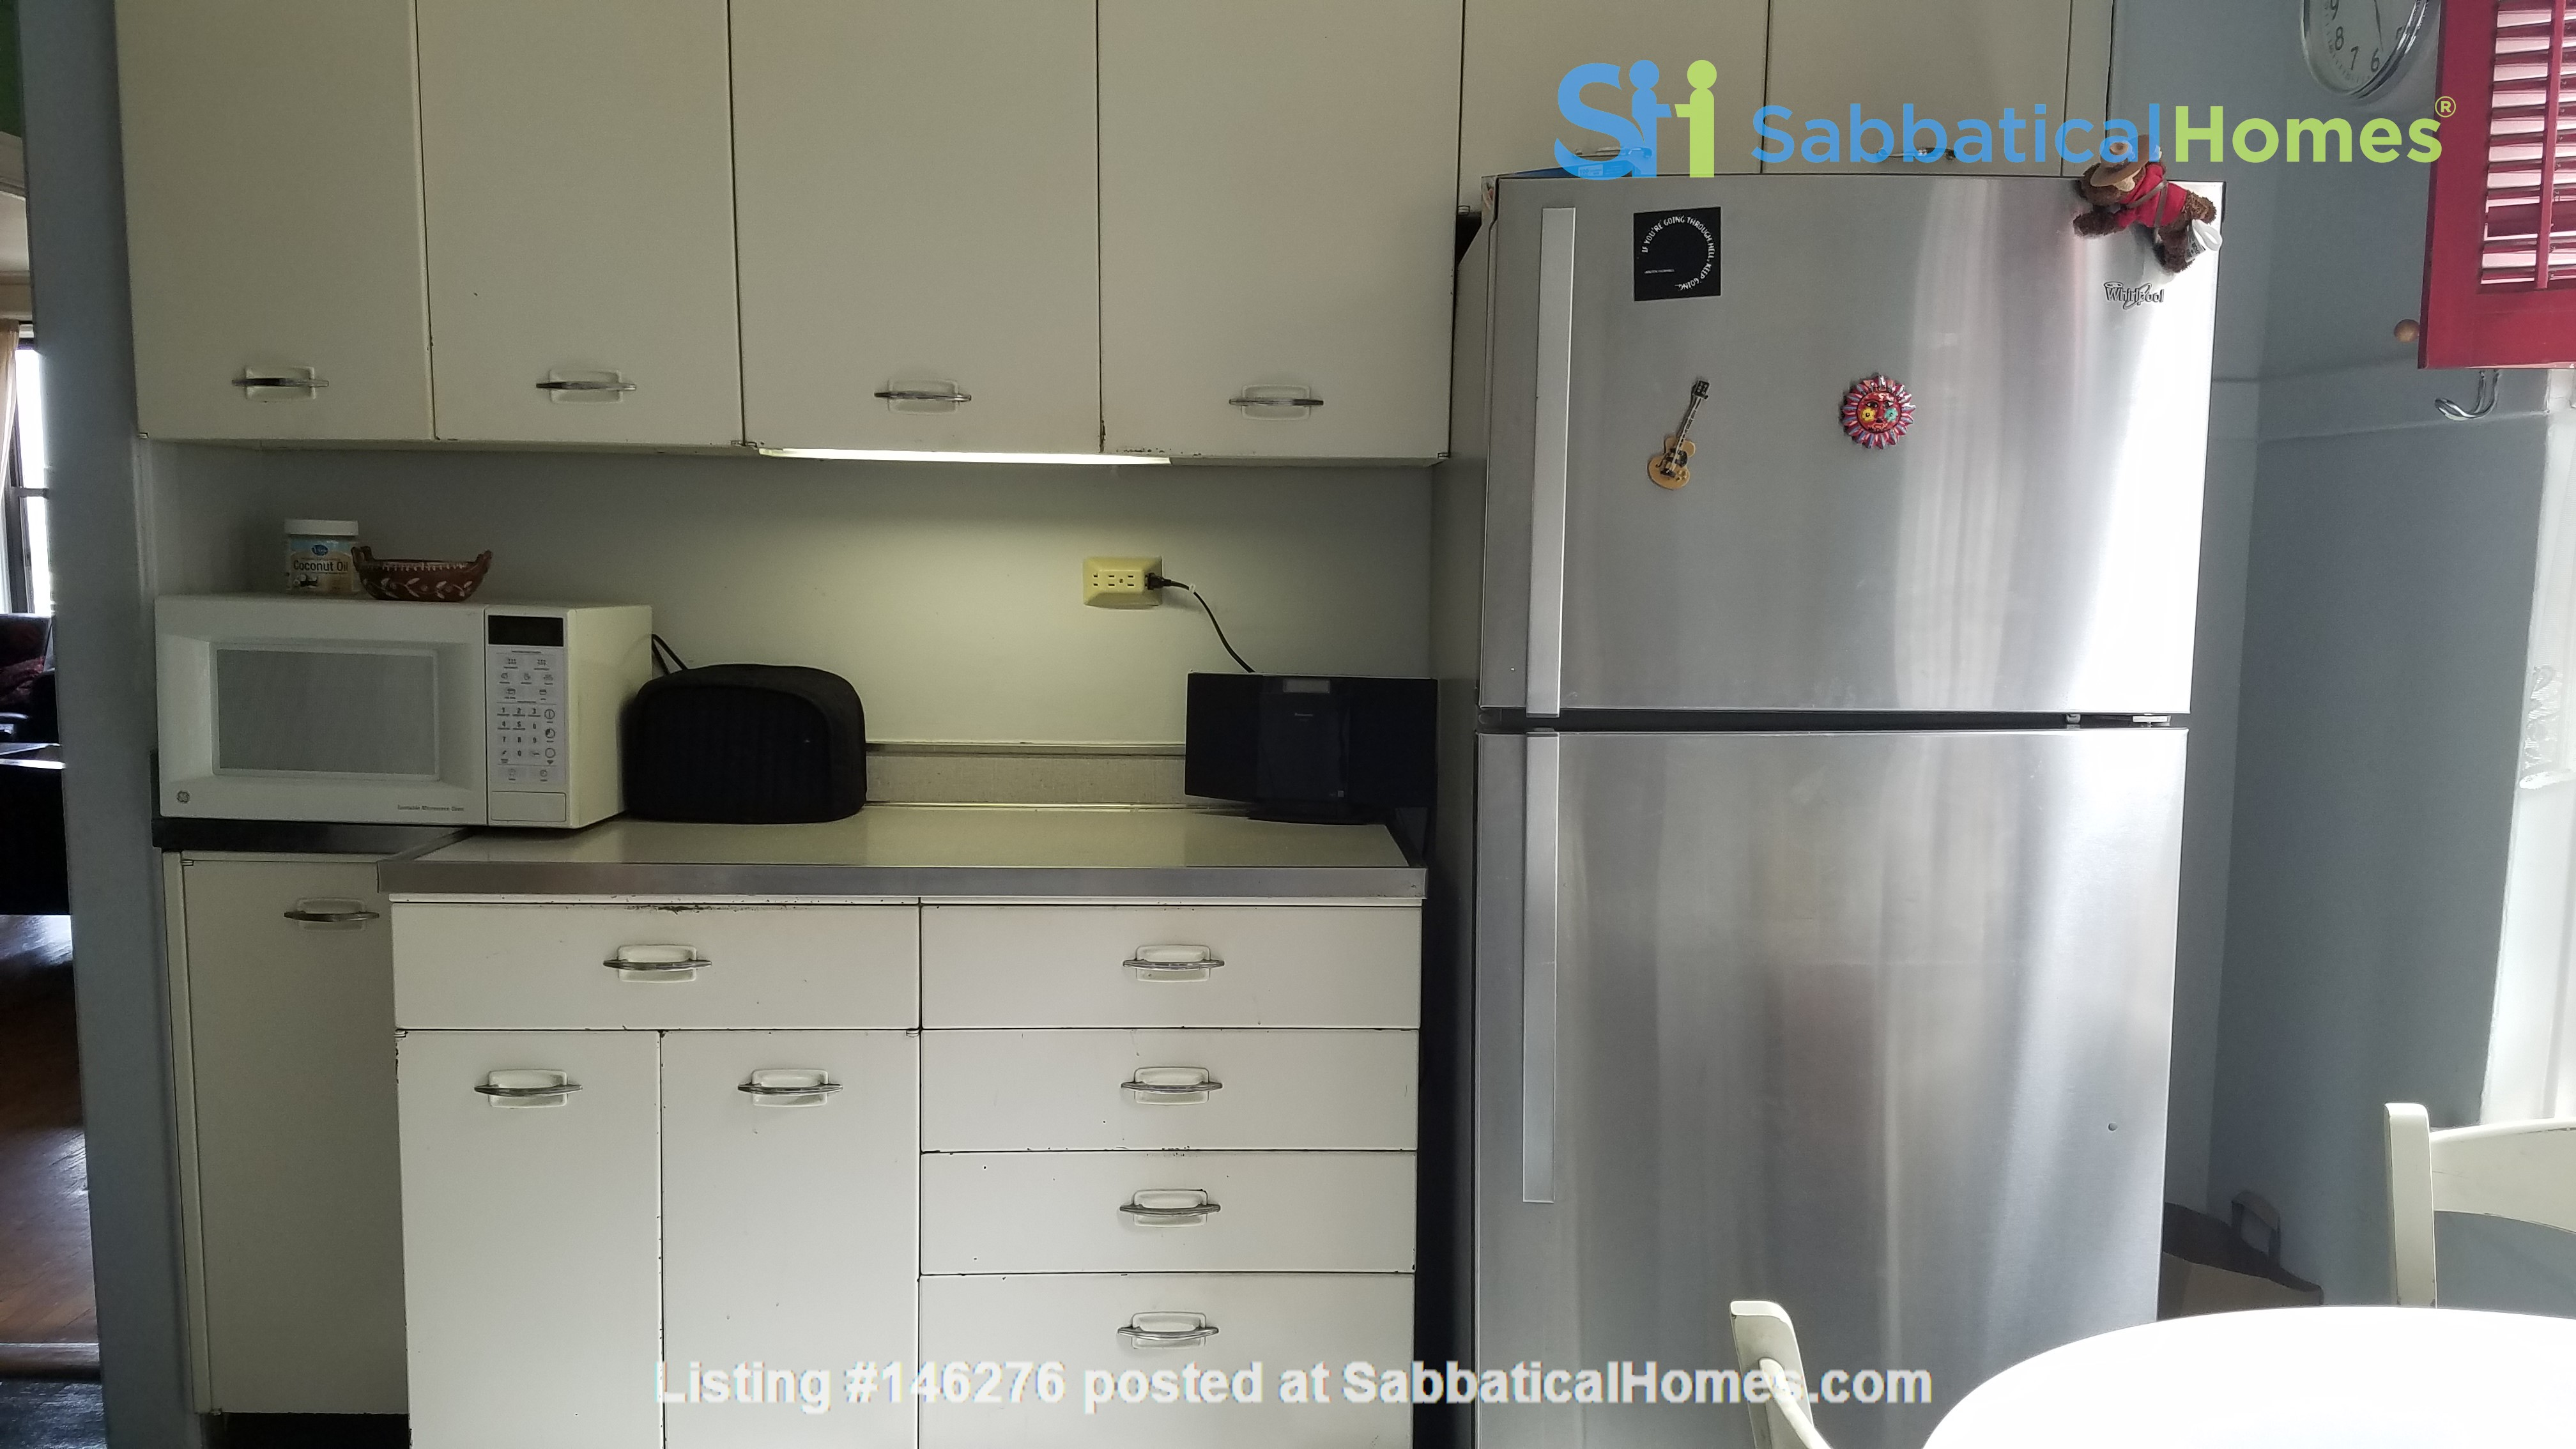 2 Bed/2 Bath Fully Furnished Lakefront Apartment Home Rental in Chicago 5